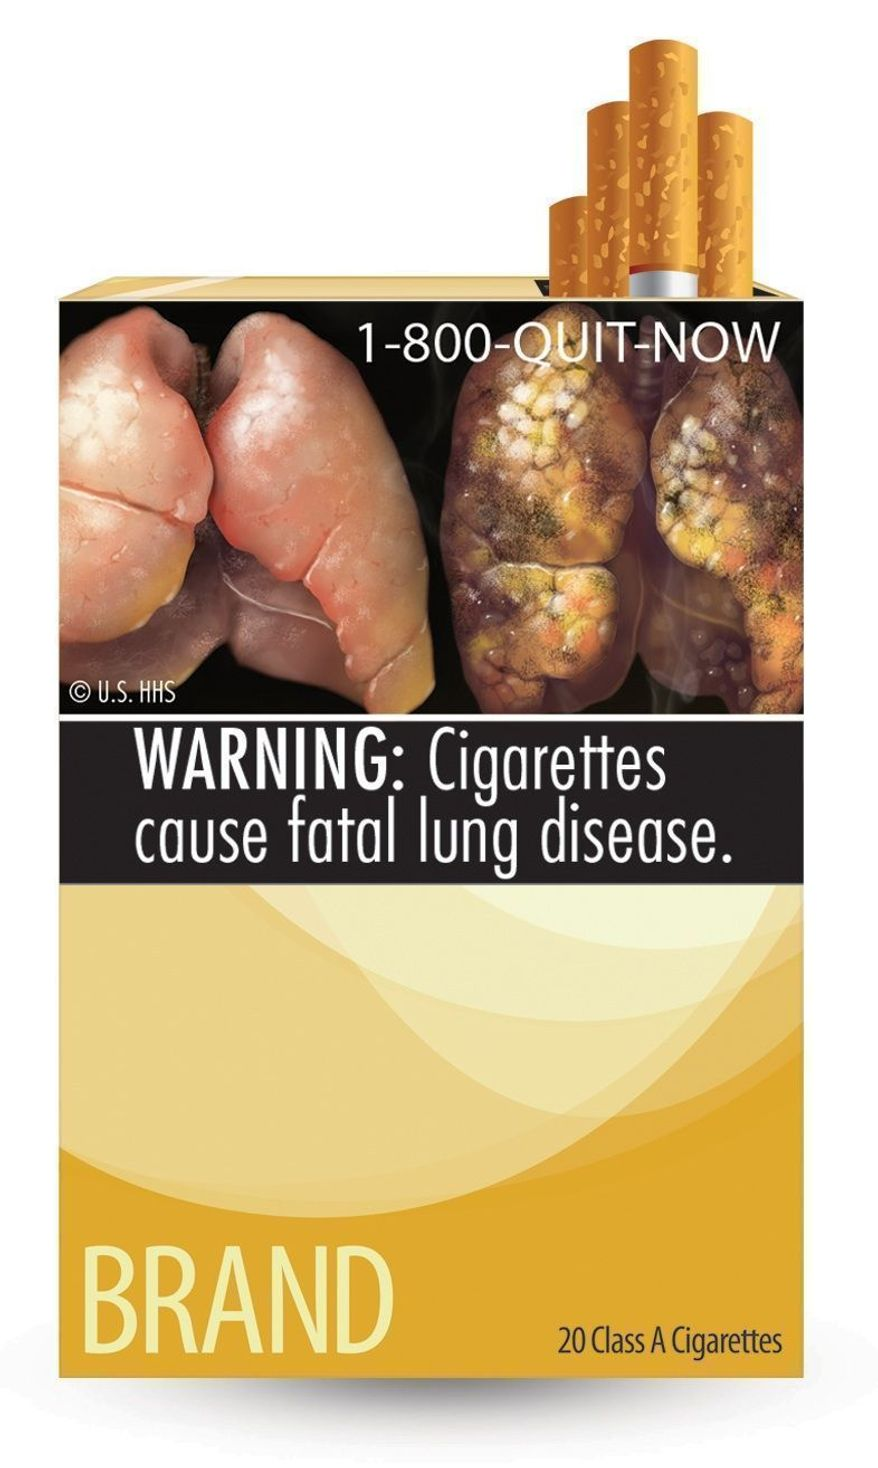 This image provided by the U.S. Food and Drug Administration on Tuesday, June 21, 2011, shows one of nine new warning labels cigarette makers will have to use by the fall of 2012. (AP Photo/U.S. Food and Drug Administration)